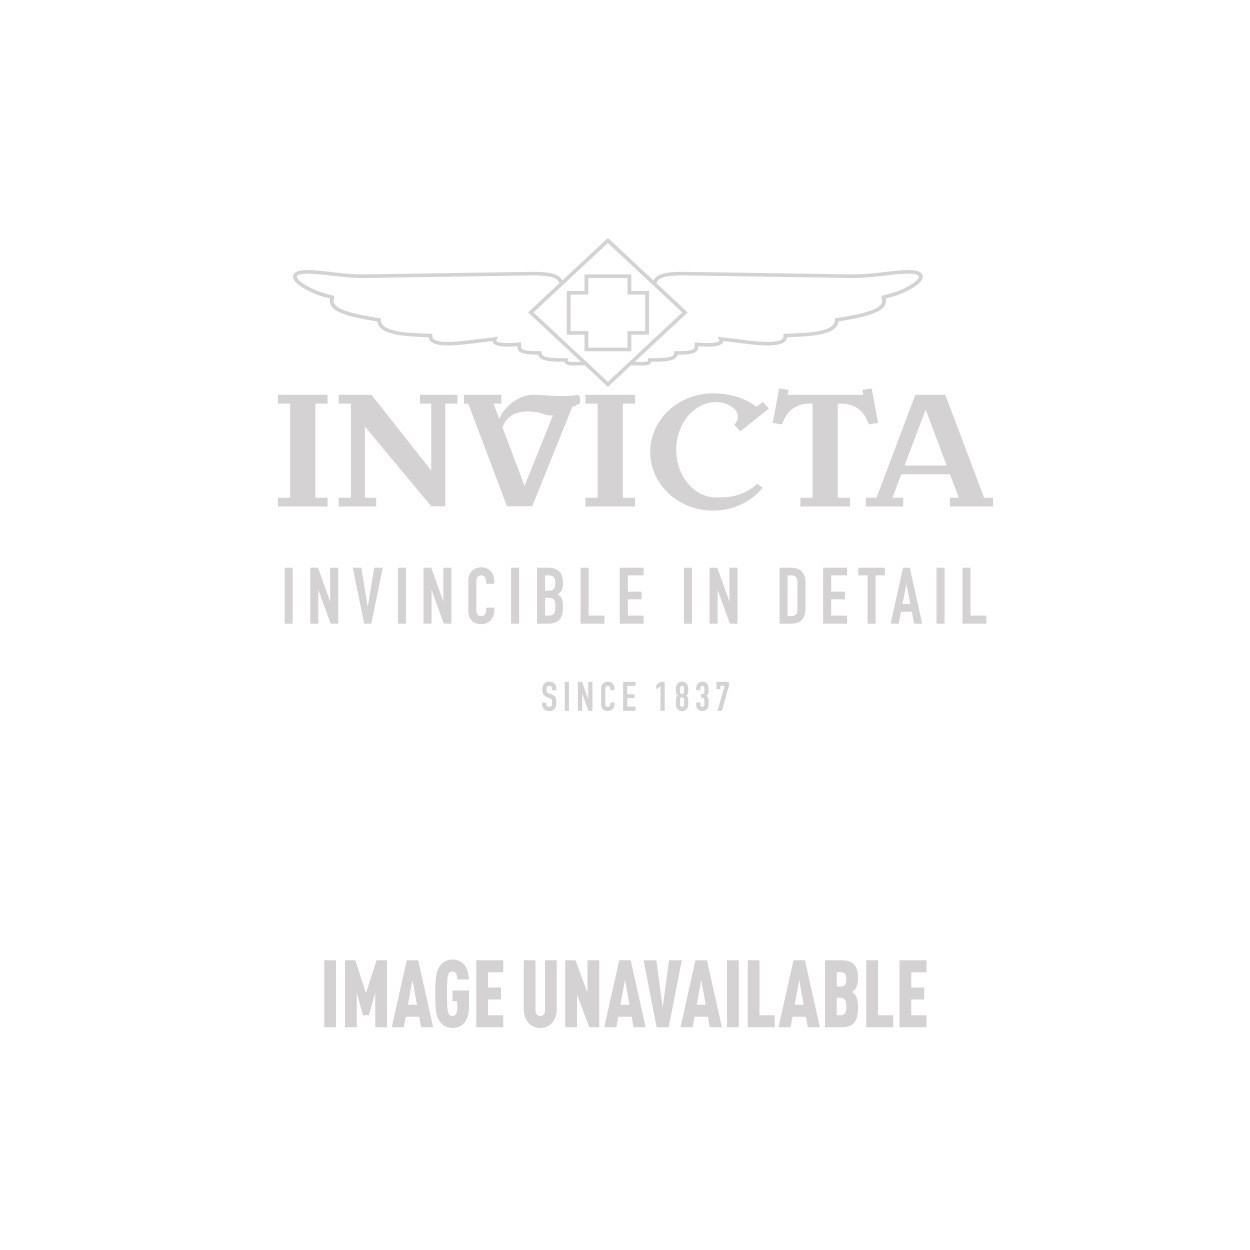 Invicta Excursion Swiss Made Quartz Watch - Stainless Steel case Stainless Steel band - Model 5525